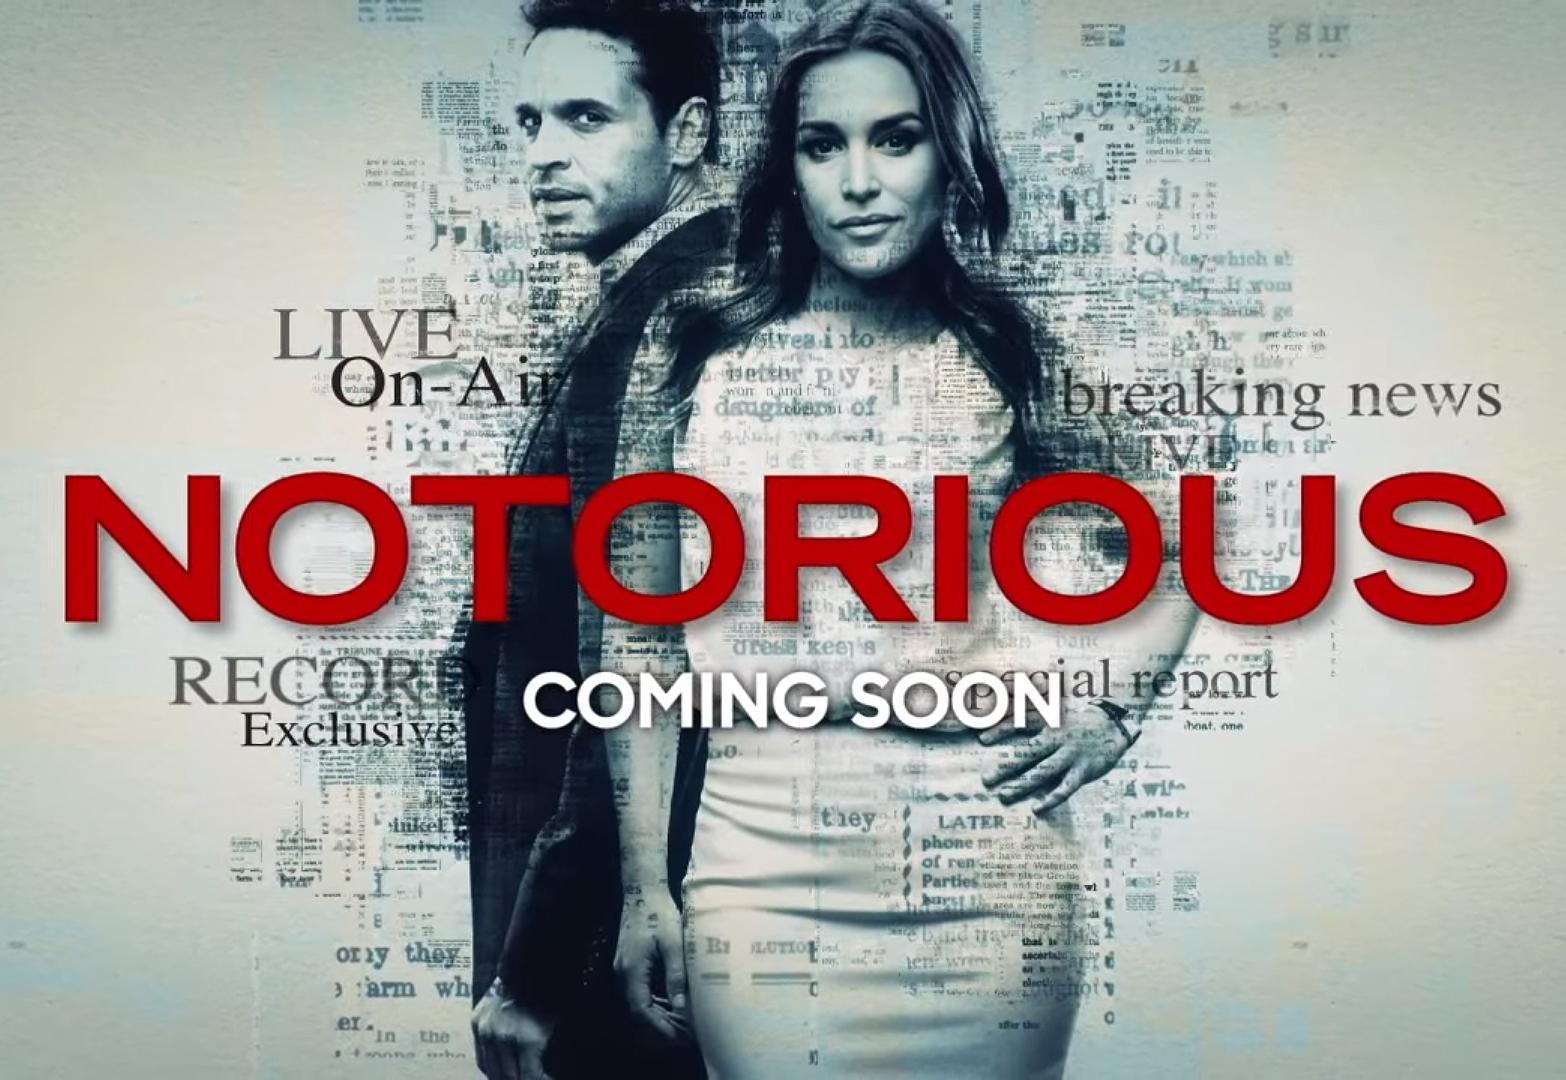 notorious serie